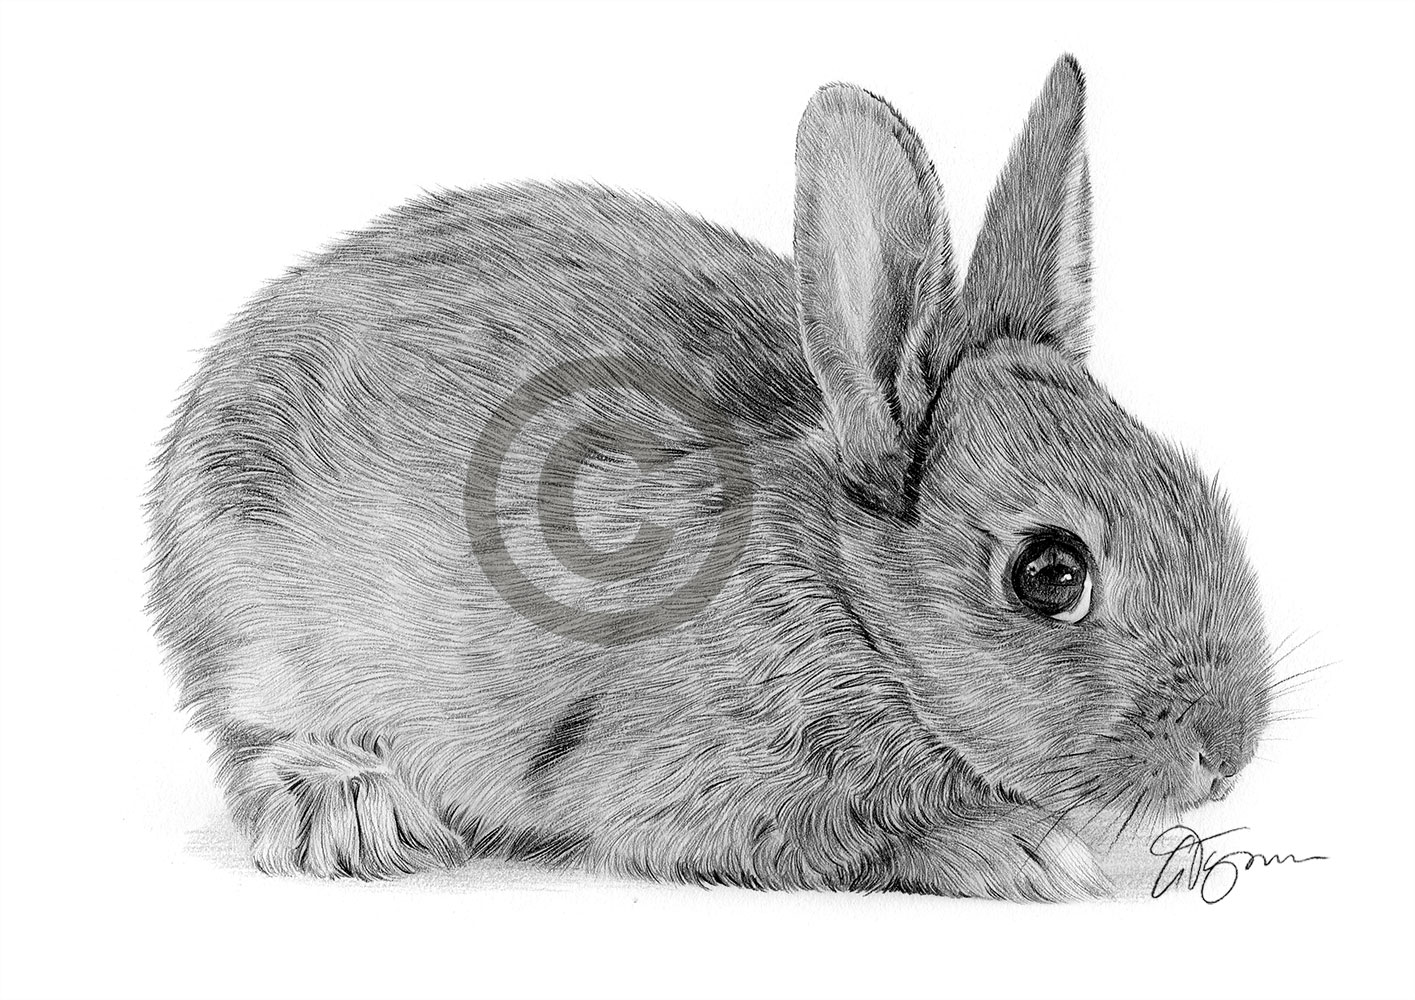 Pencil drawing of a baby rabbit by artist Gary Tymon